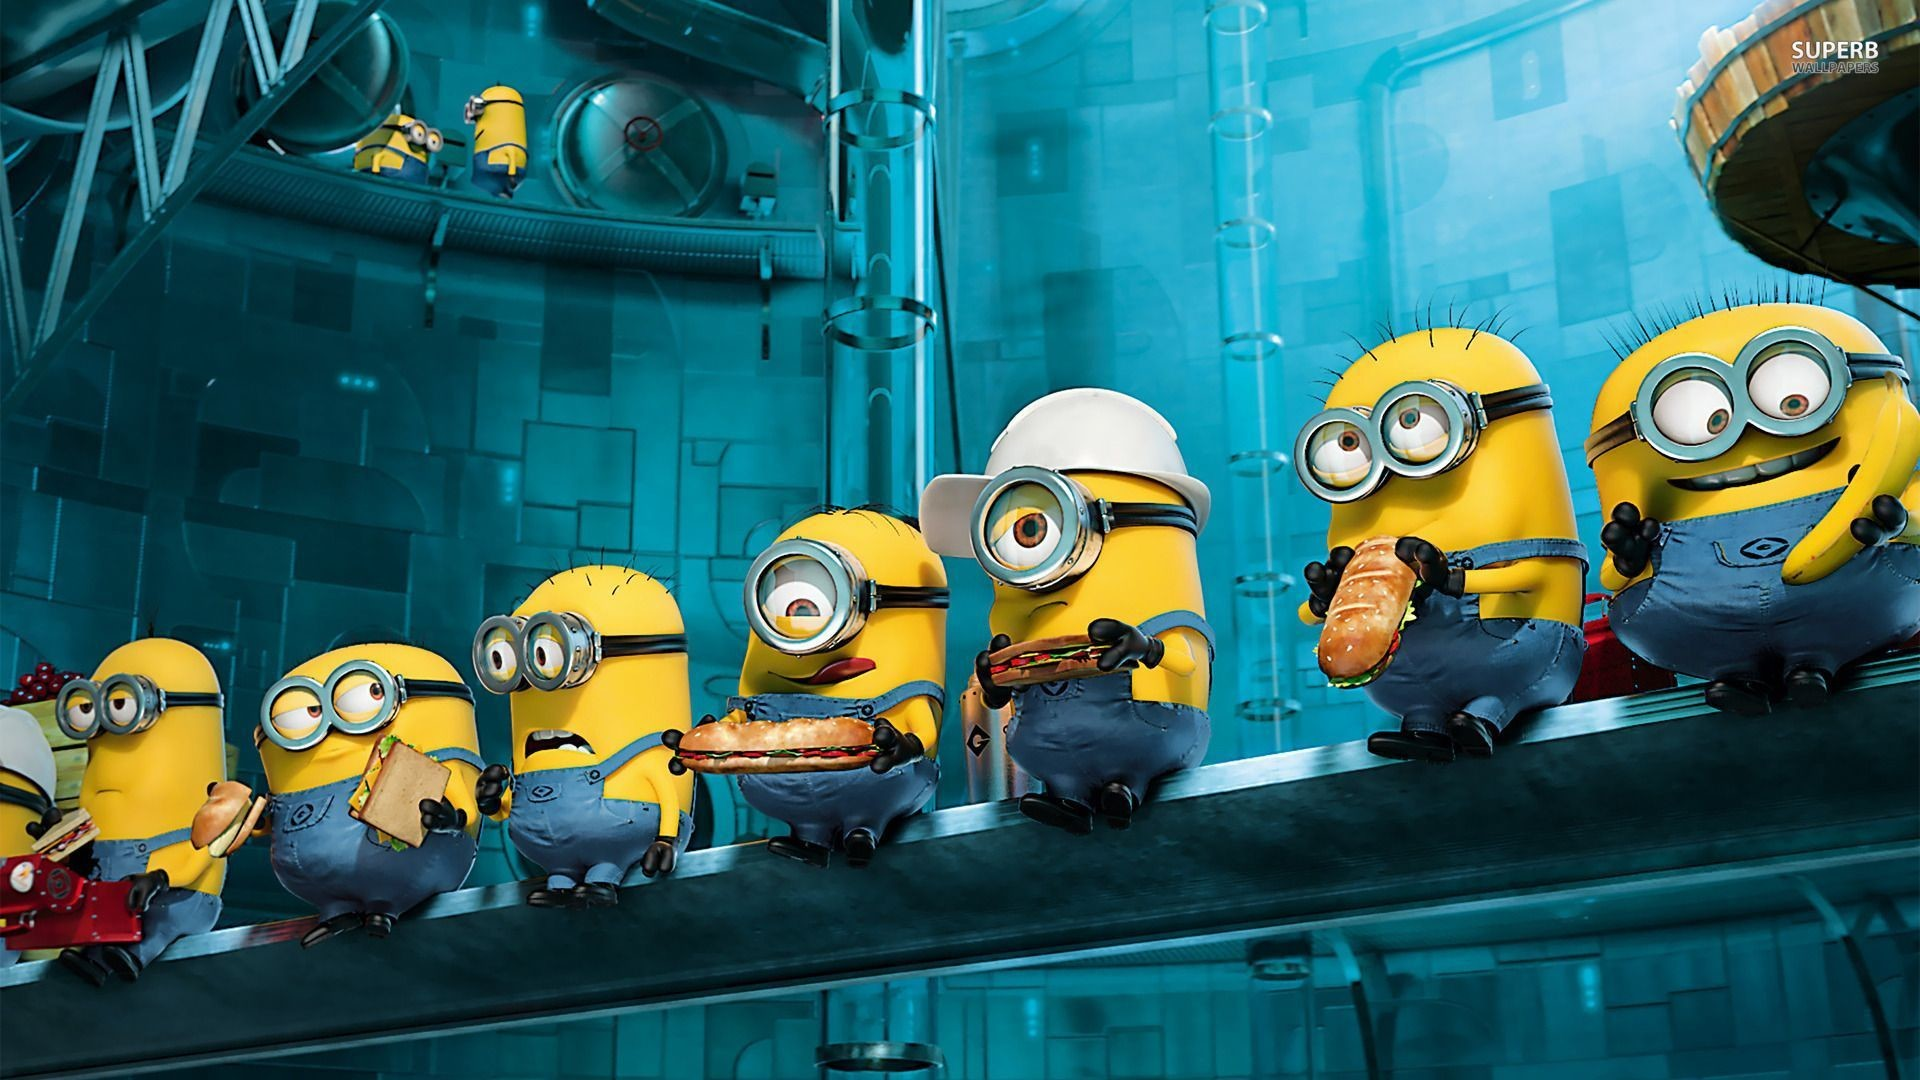 1920x1080 Despicable Me 2 Minions Desktop Wallpaper Hd  Lunch Break .